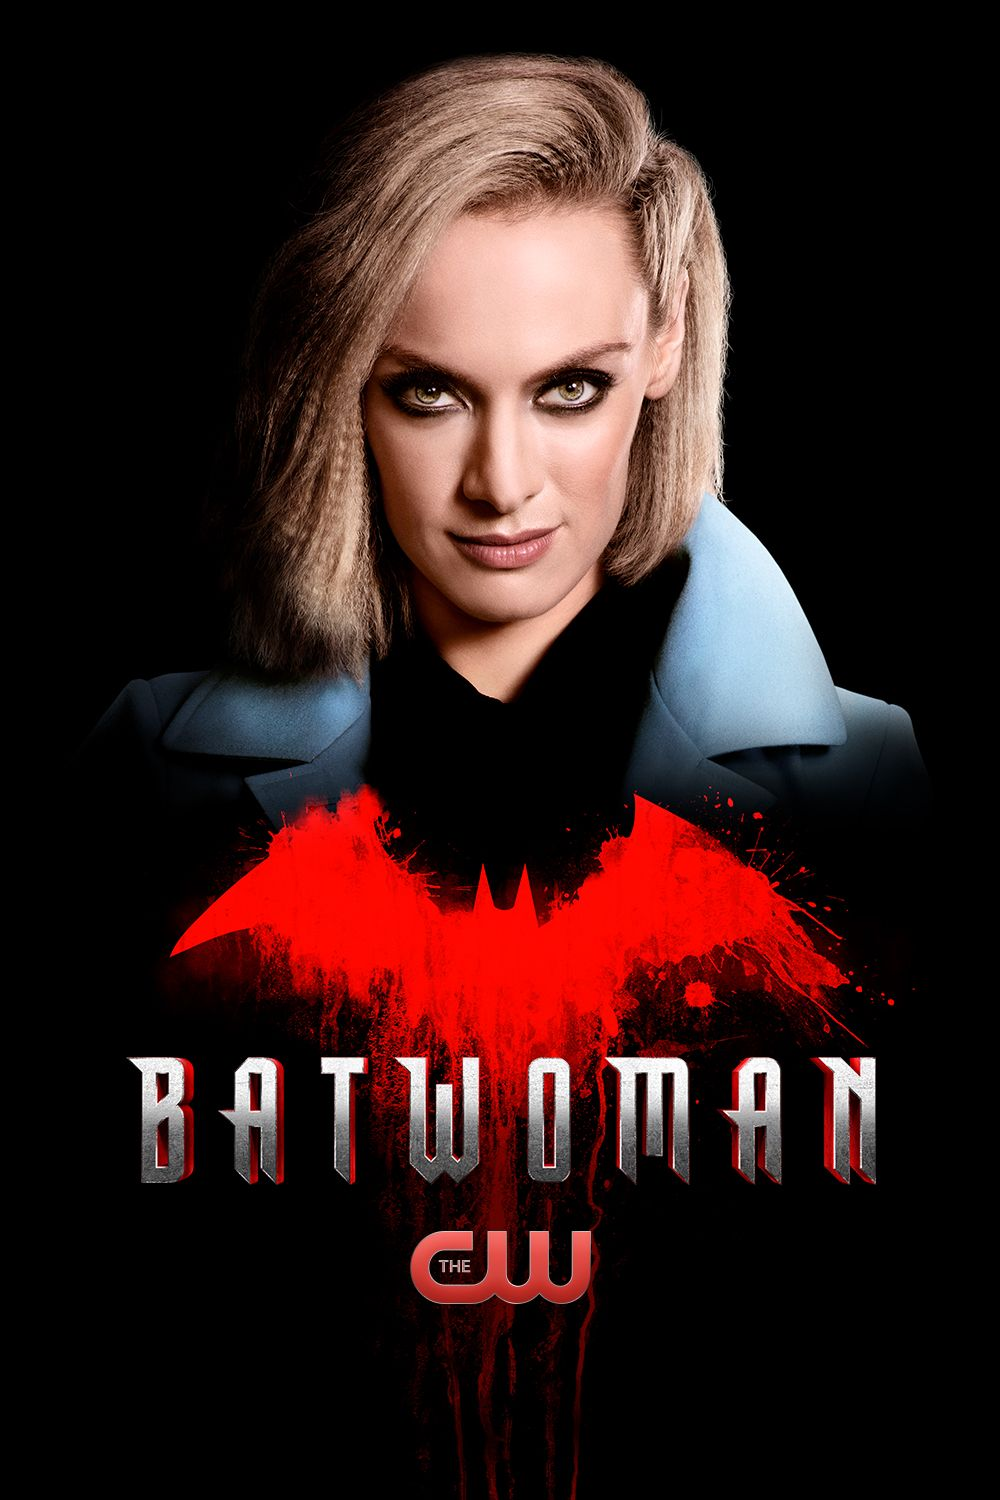 Batwoman premieres Sunday, October 6 on The CW. Stream